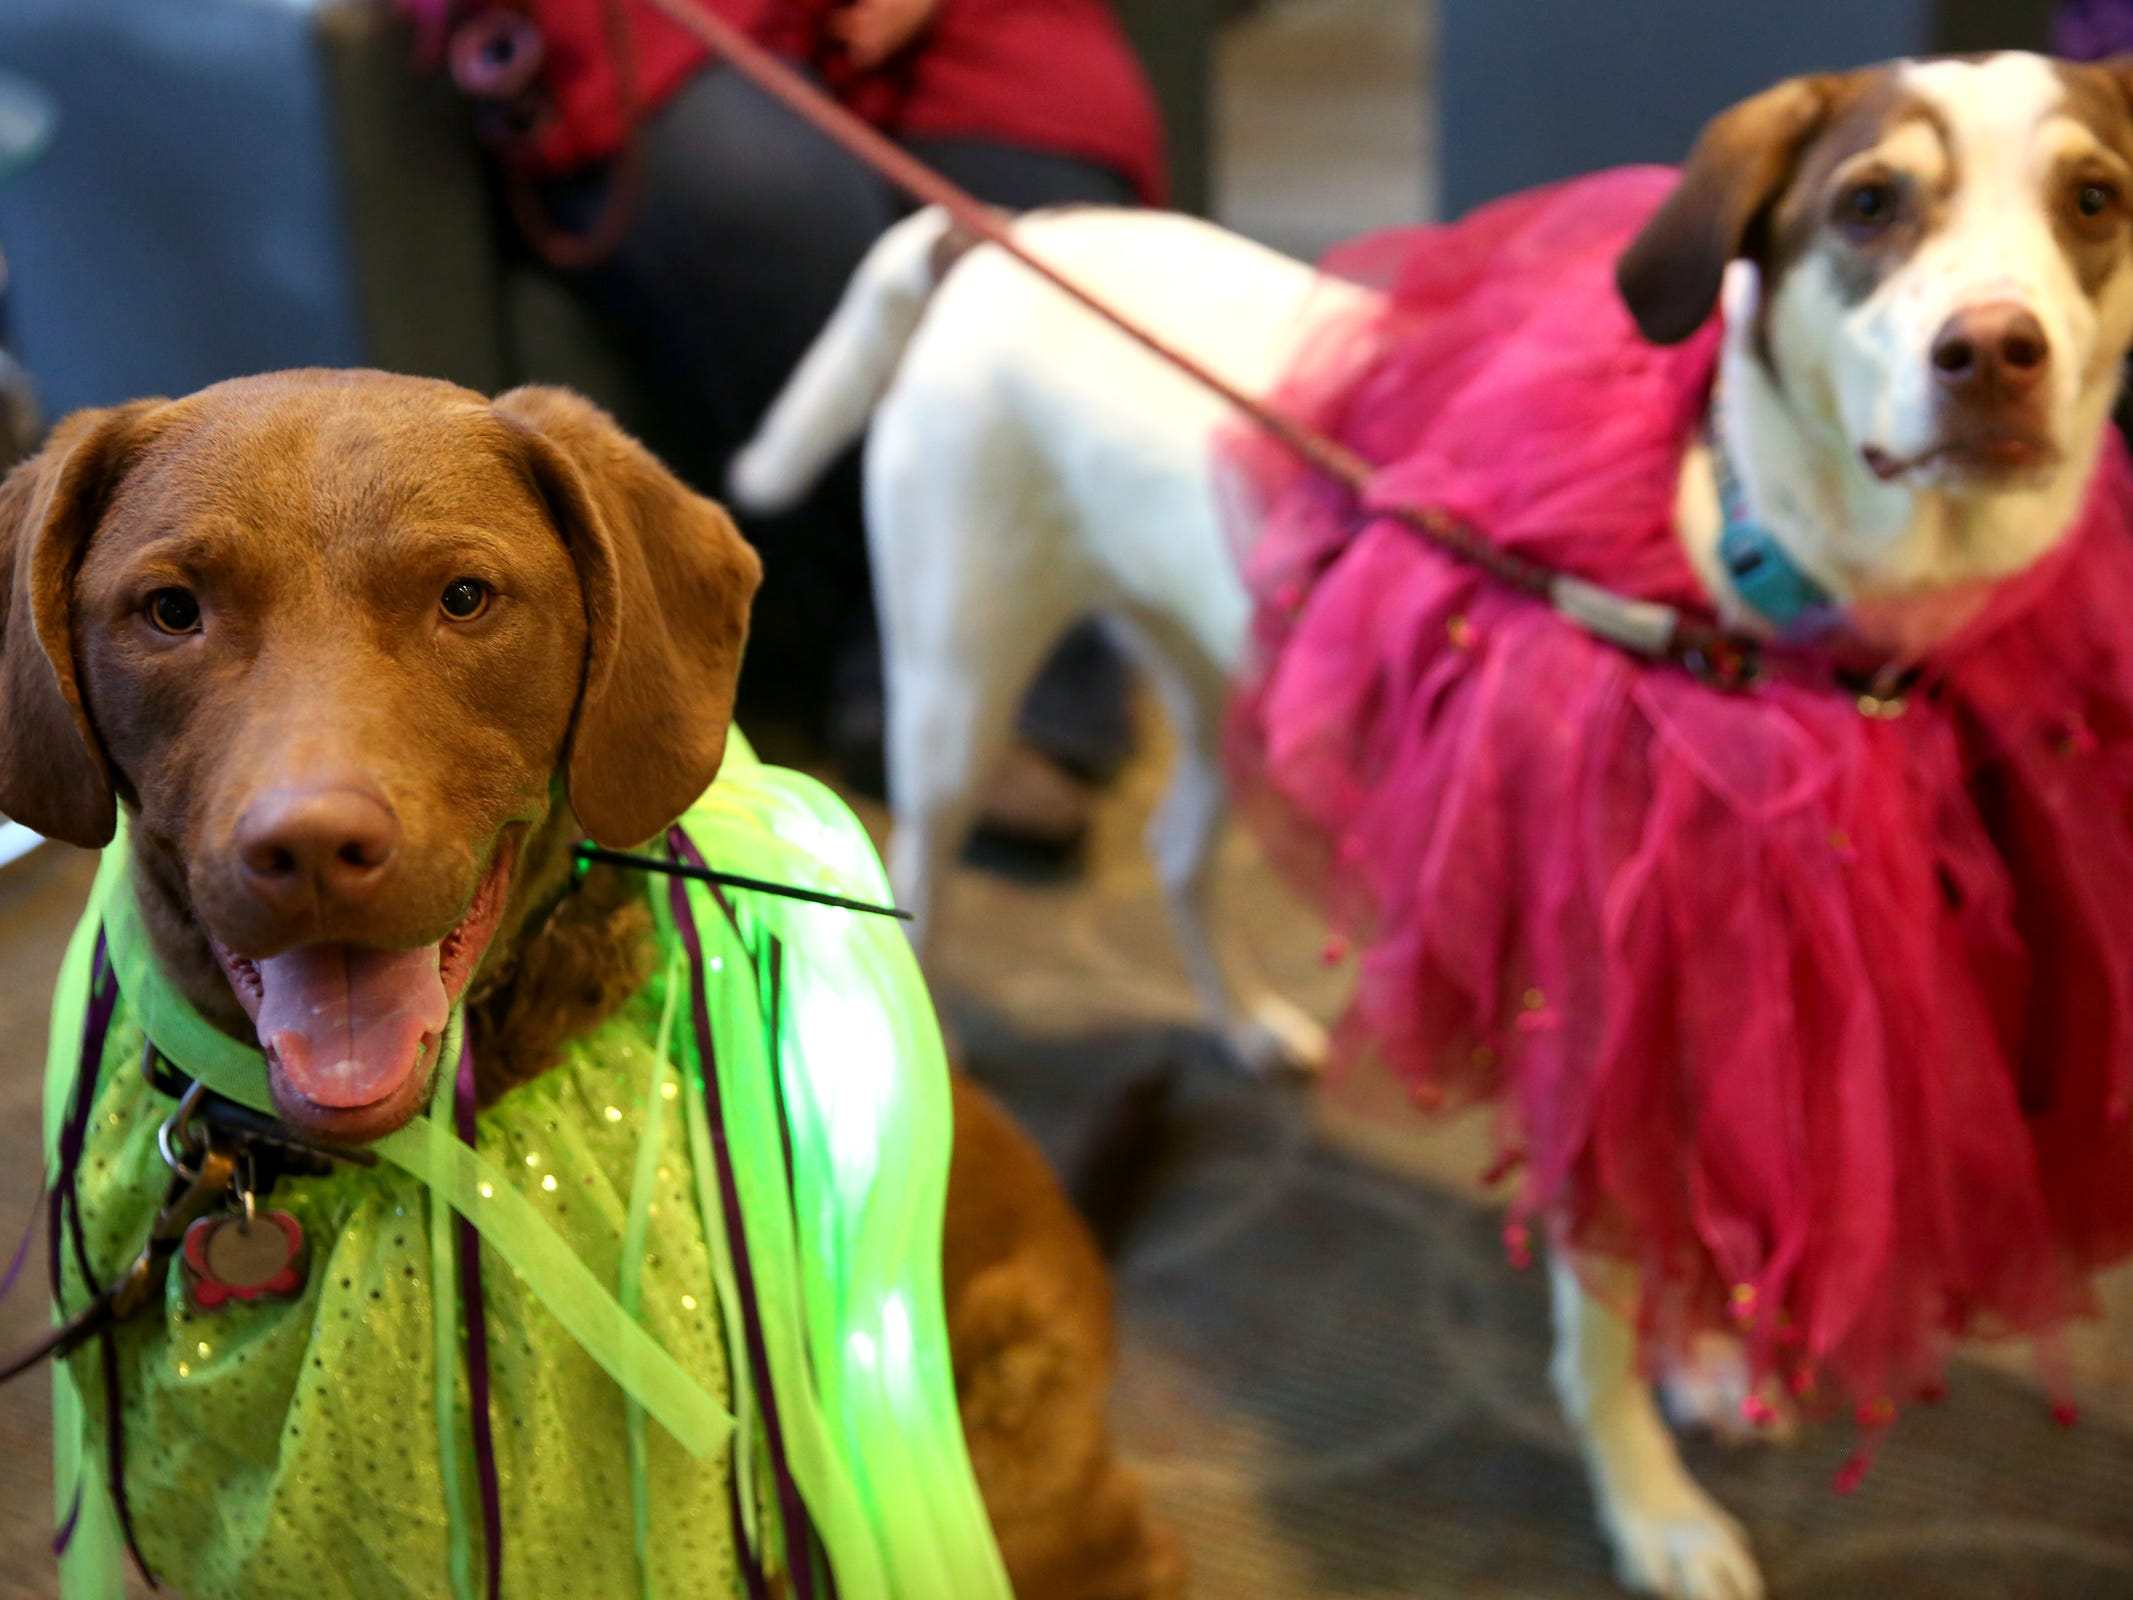 Ruby, left, and Chesapeake Bay Retriever, and Harley, a mix, owned by Charlie and Kristy Spencer, of Salem, wear tutus at Bowser's Boo Bash, a fundraiser for the Willamette Humane Society, at the Salem Convention Center on Saturday, Oct. 27, 2018. Harley was adopted from the Willamette Humane Society.